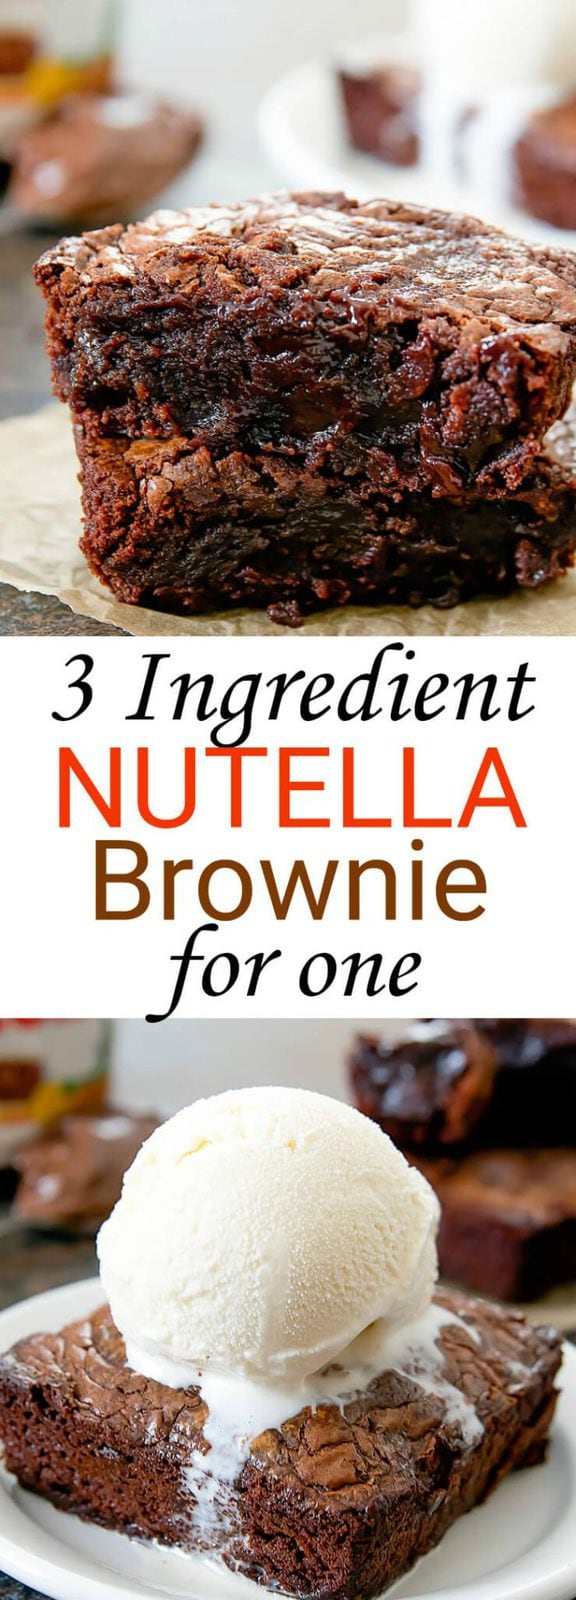 Single Serving 3 Ingredient Nutella Brownie for One